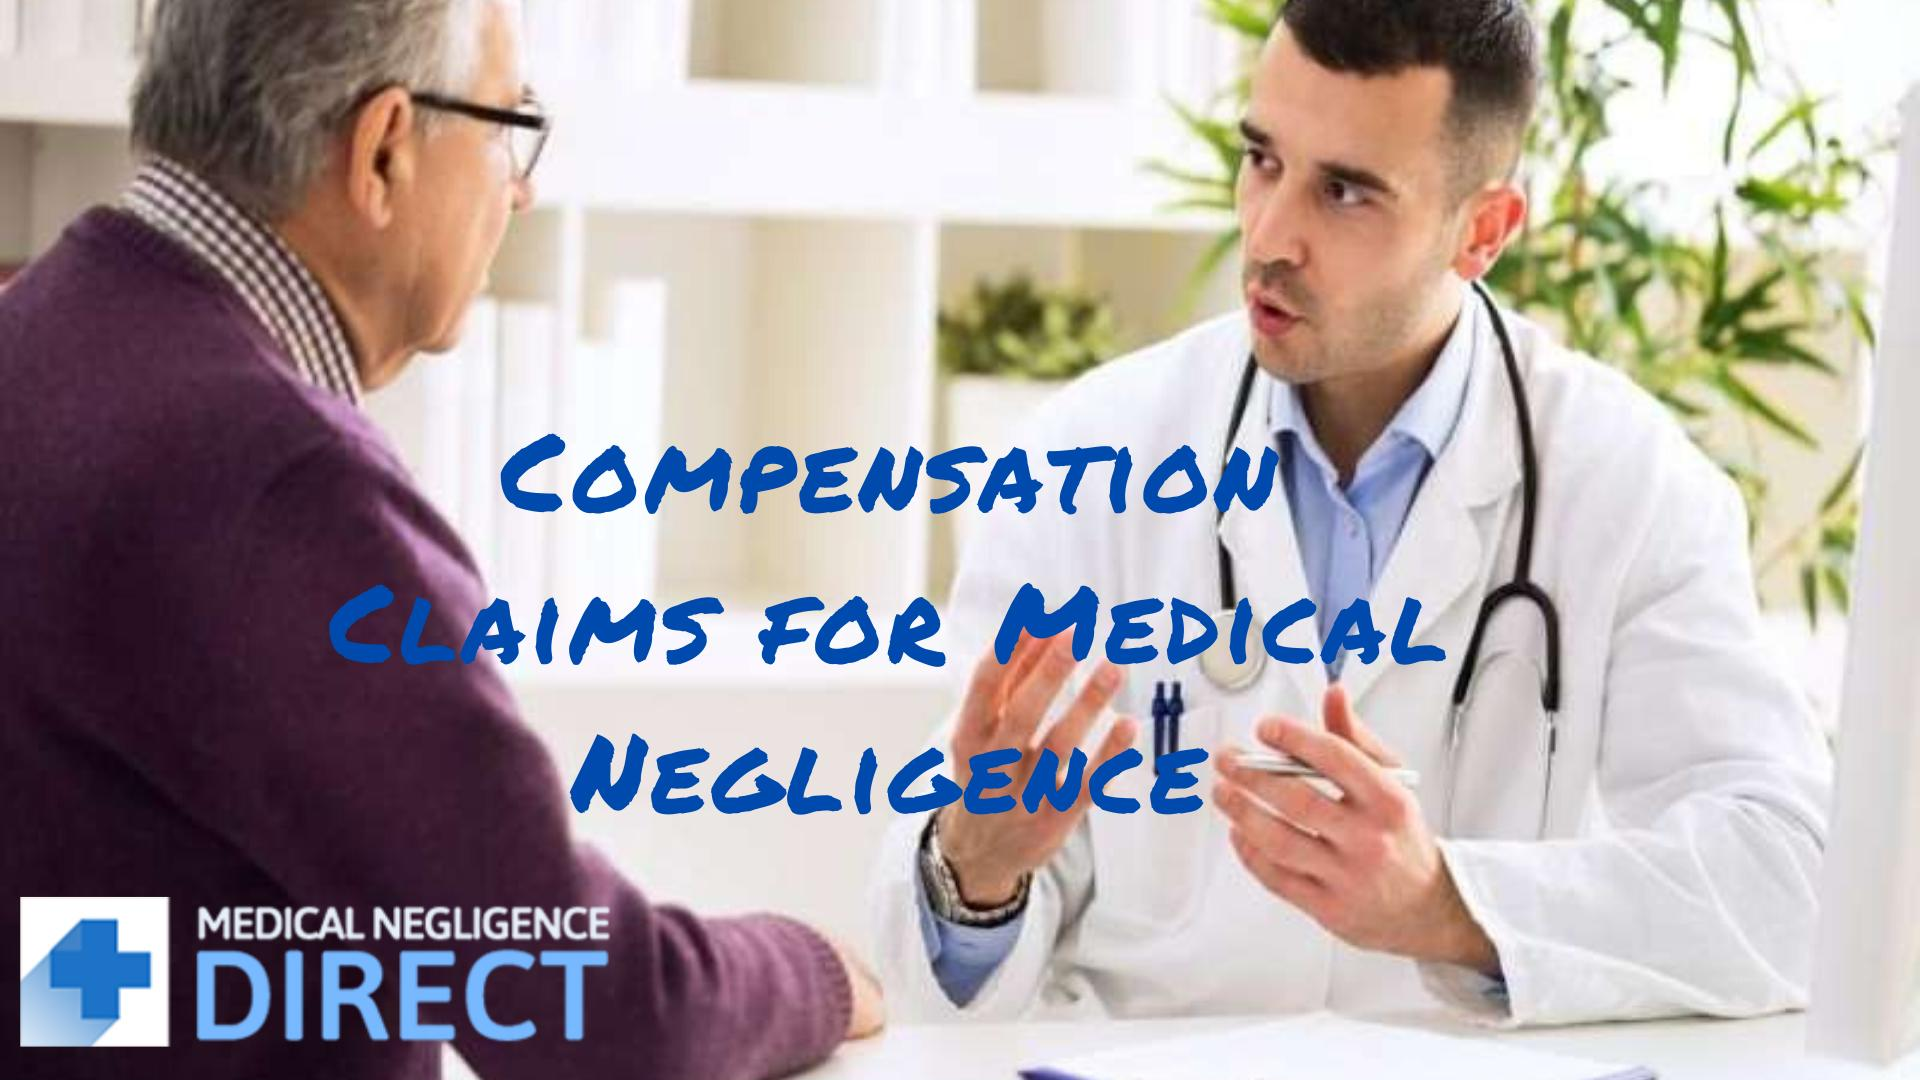 Image - Are you looking the Best #MedicalNegligenceSolicitors in Liverpool? Medical Negligence Direct is providing th...